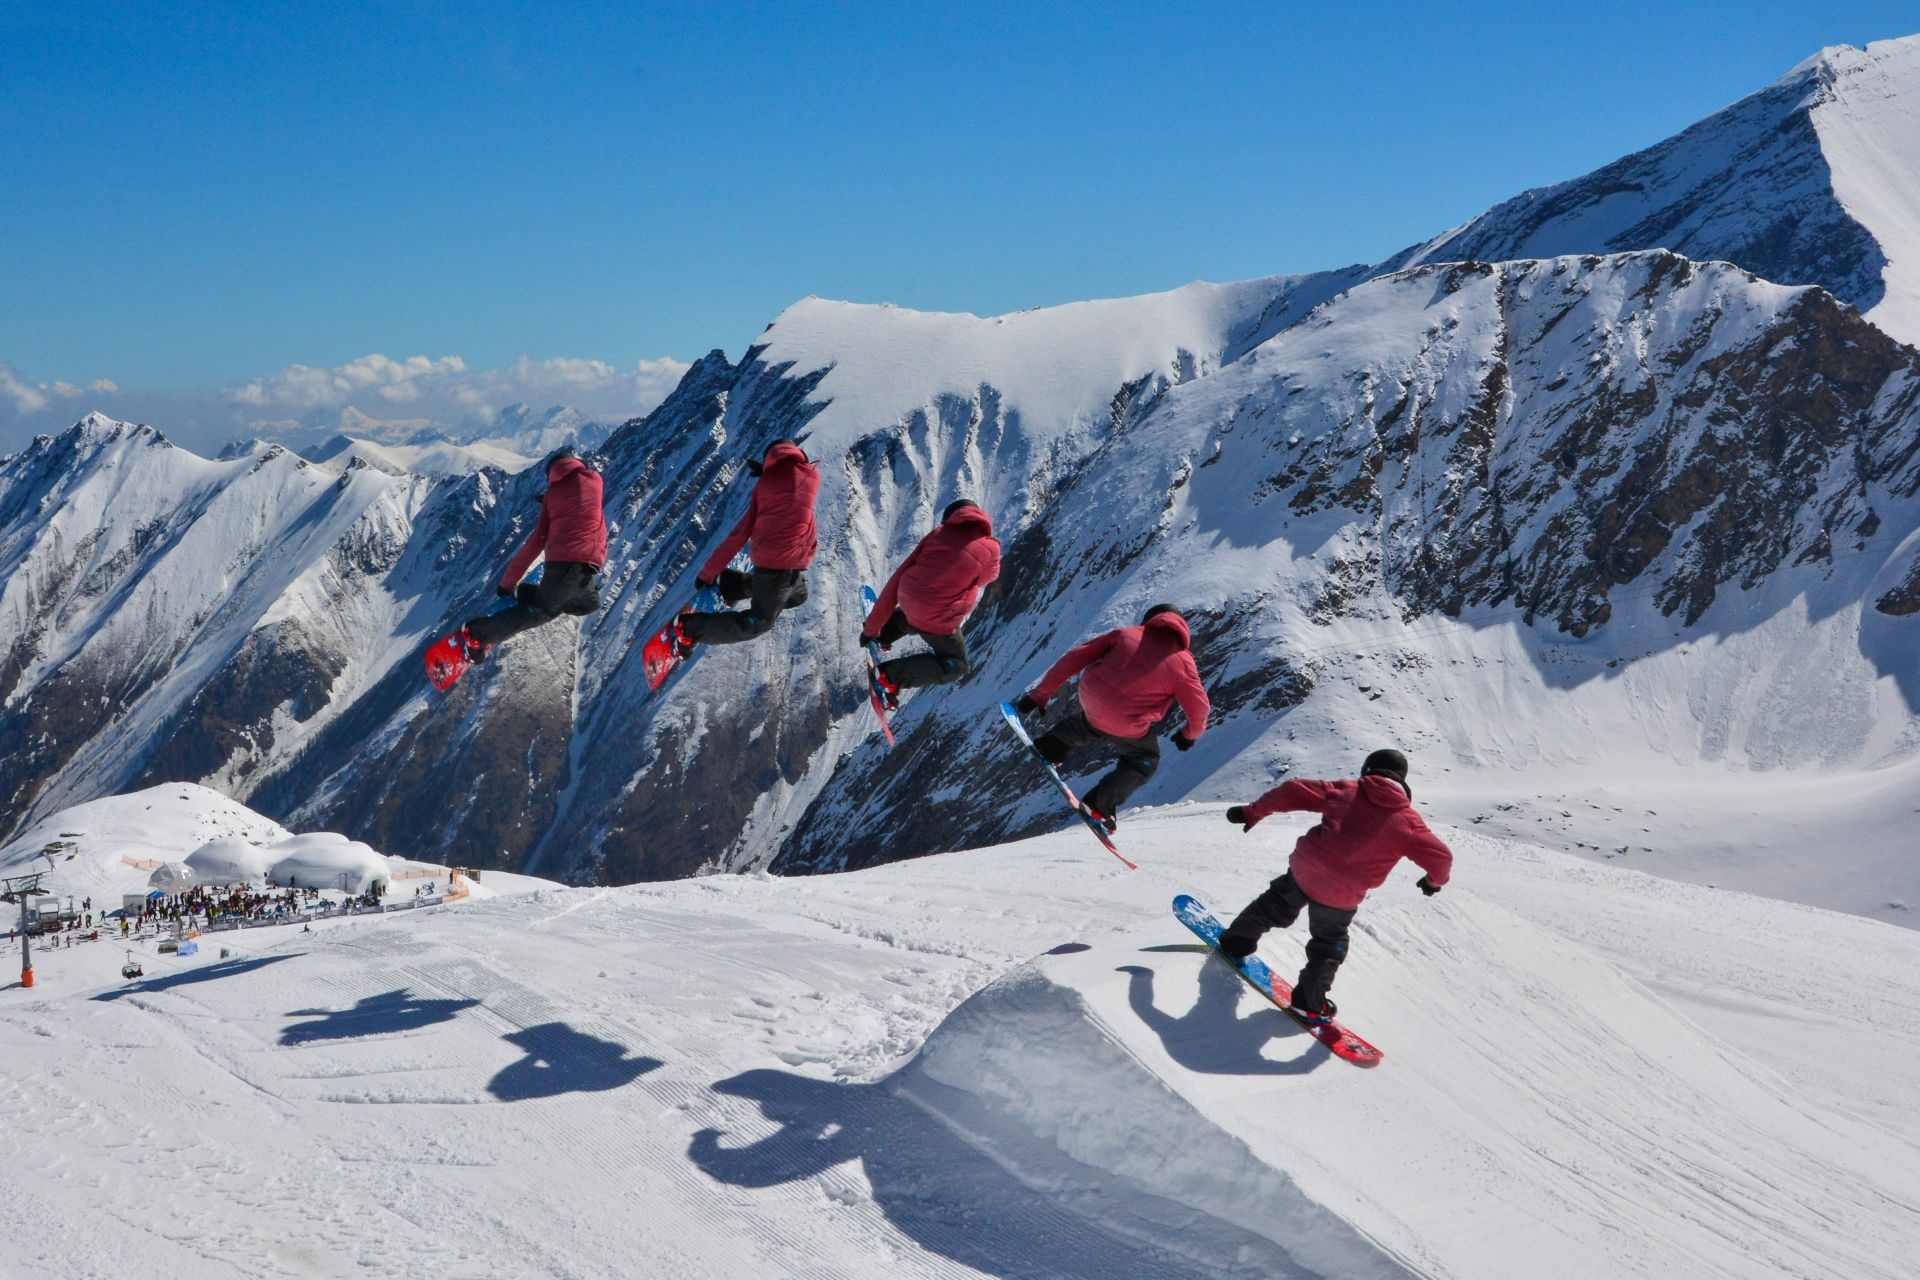 Top tips to make the most of spring skiing